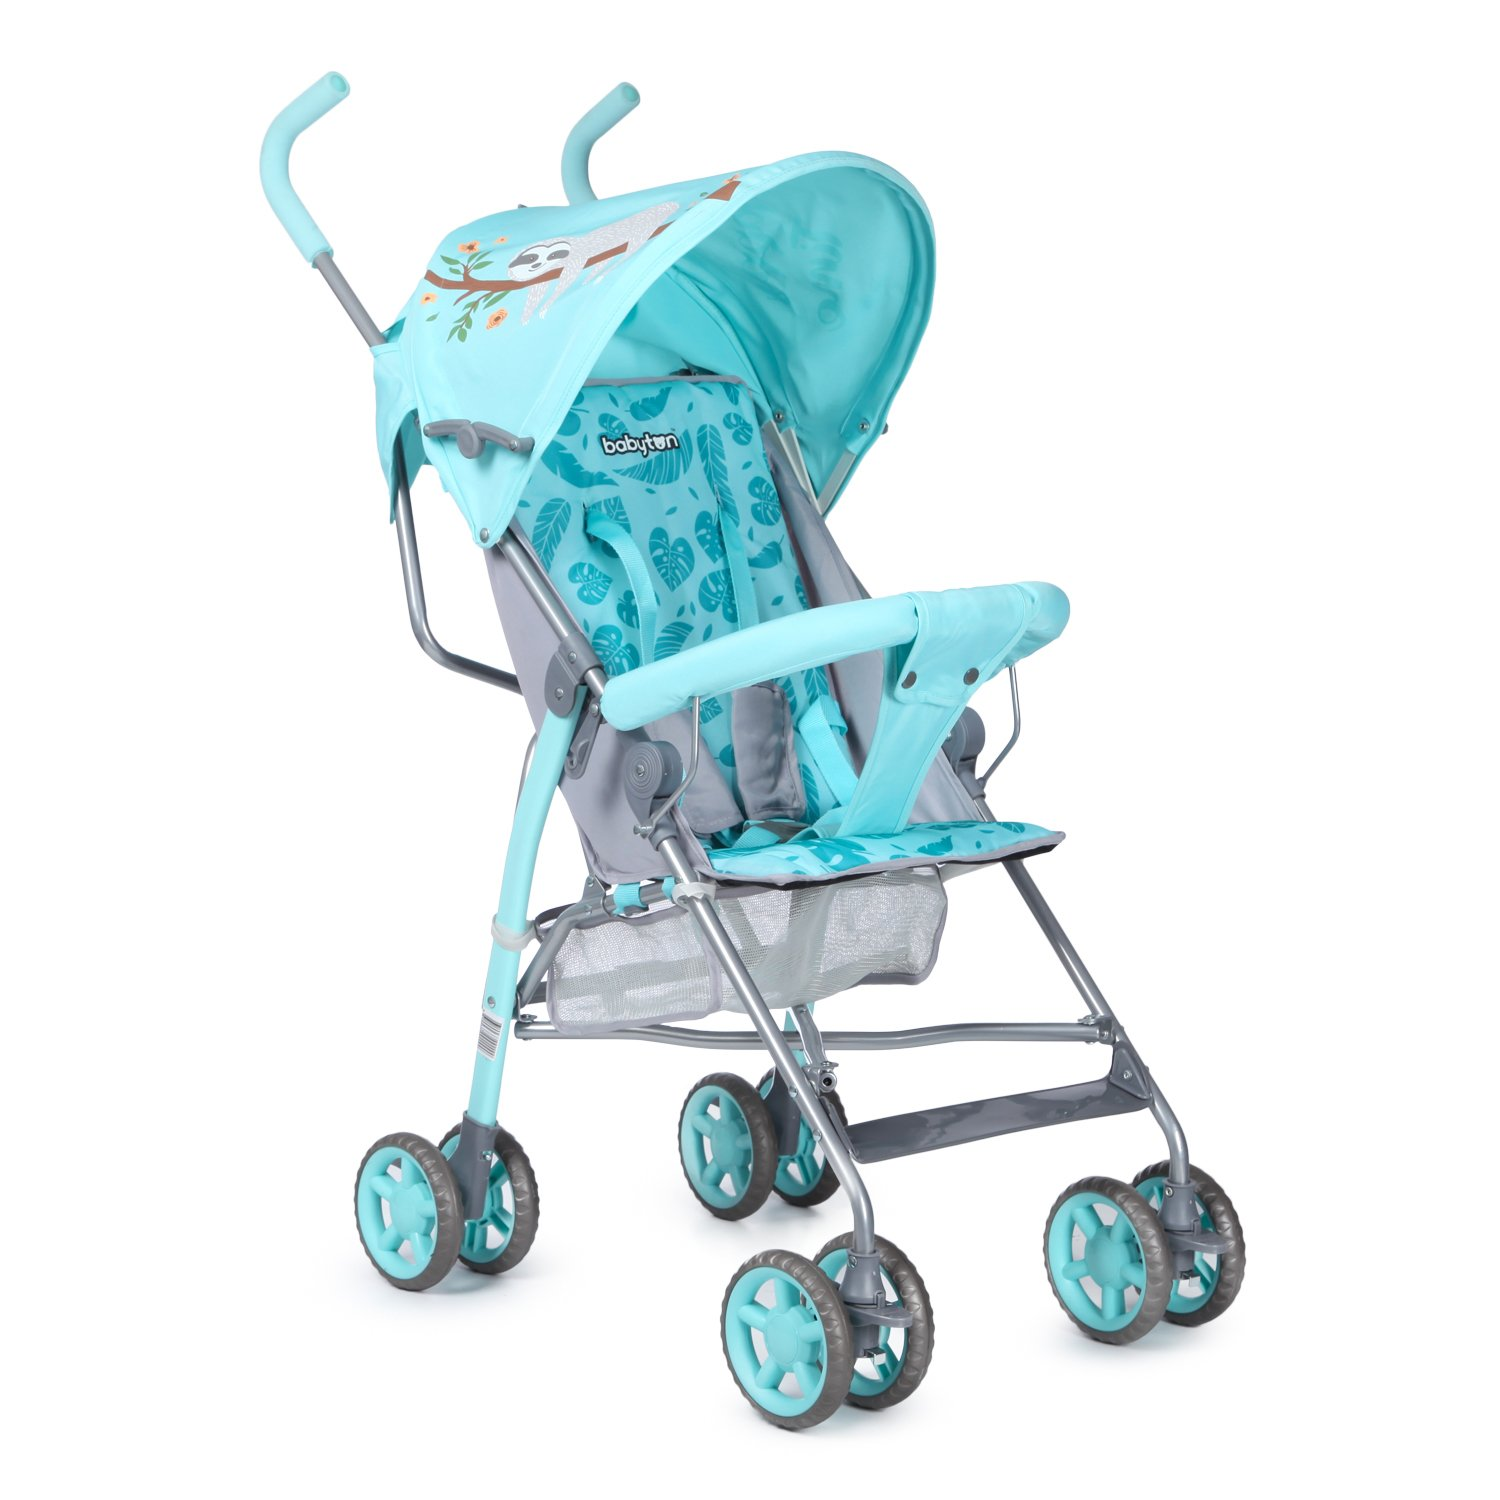 Коляска-трость Babyton Zoo Light Blue FL801-C-3